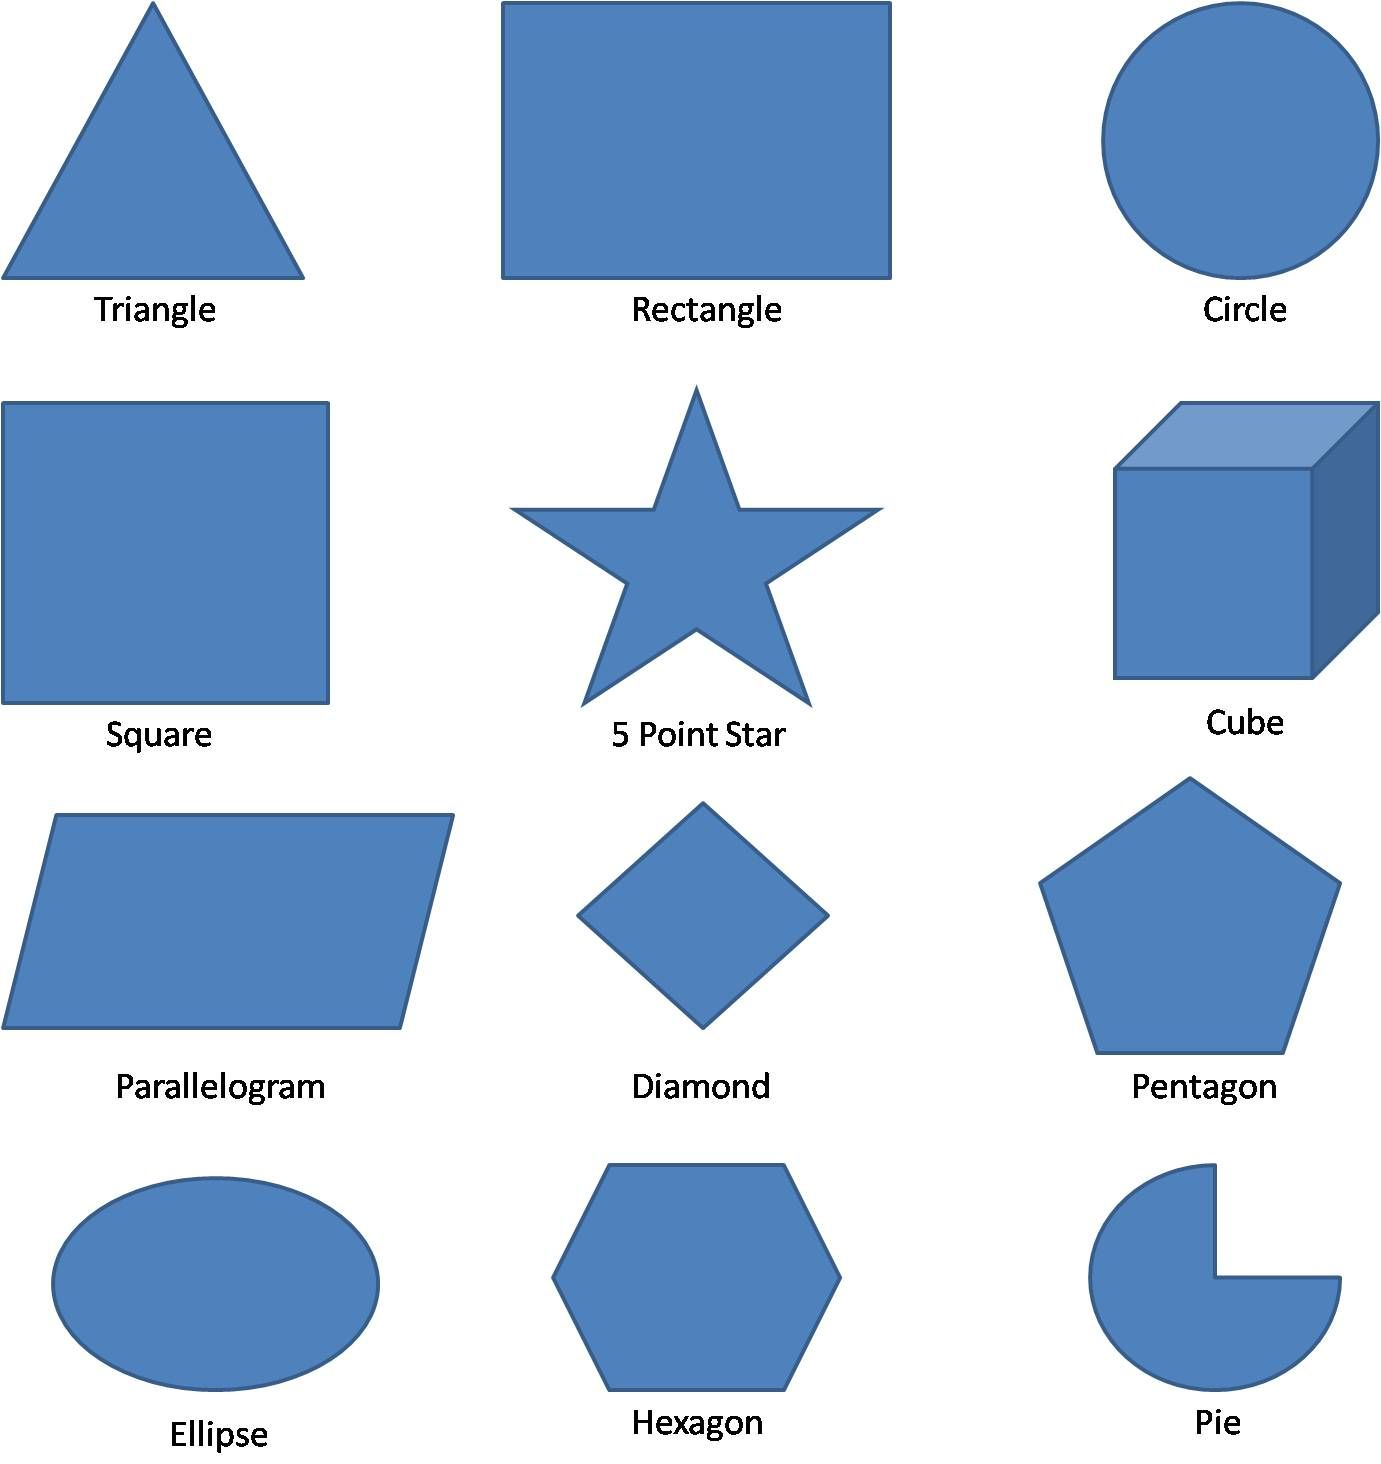 Worksheet Names In Shapes pin by amanda brinkley on homeschool daydreams pinterest shape 3d geometric shapes and shapes